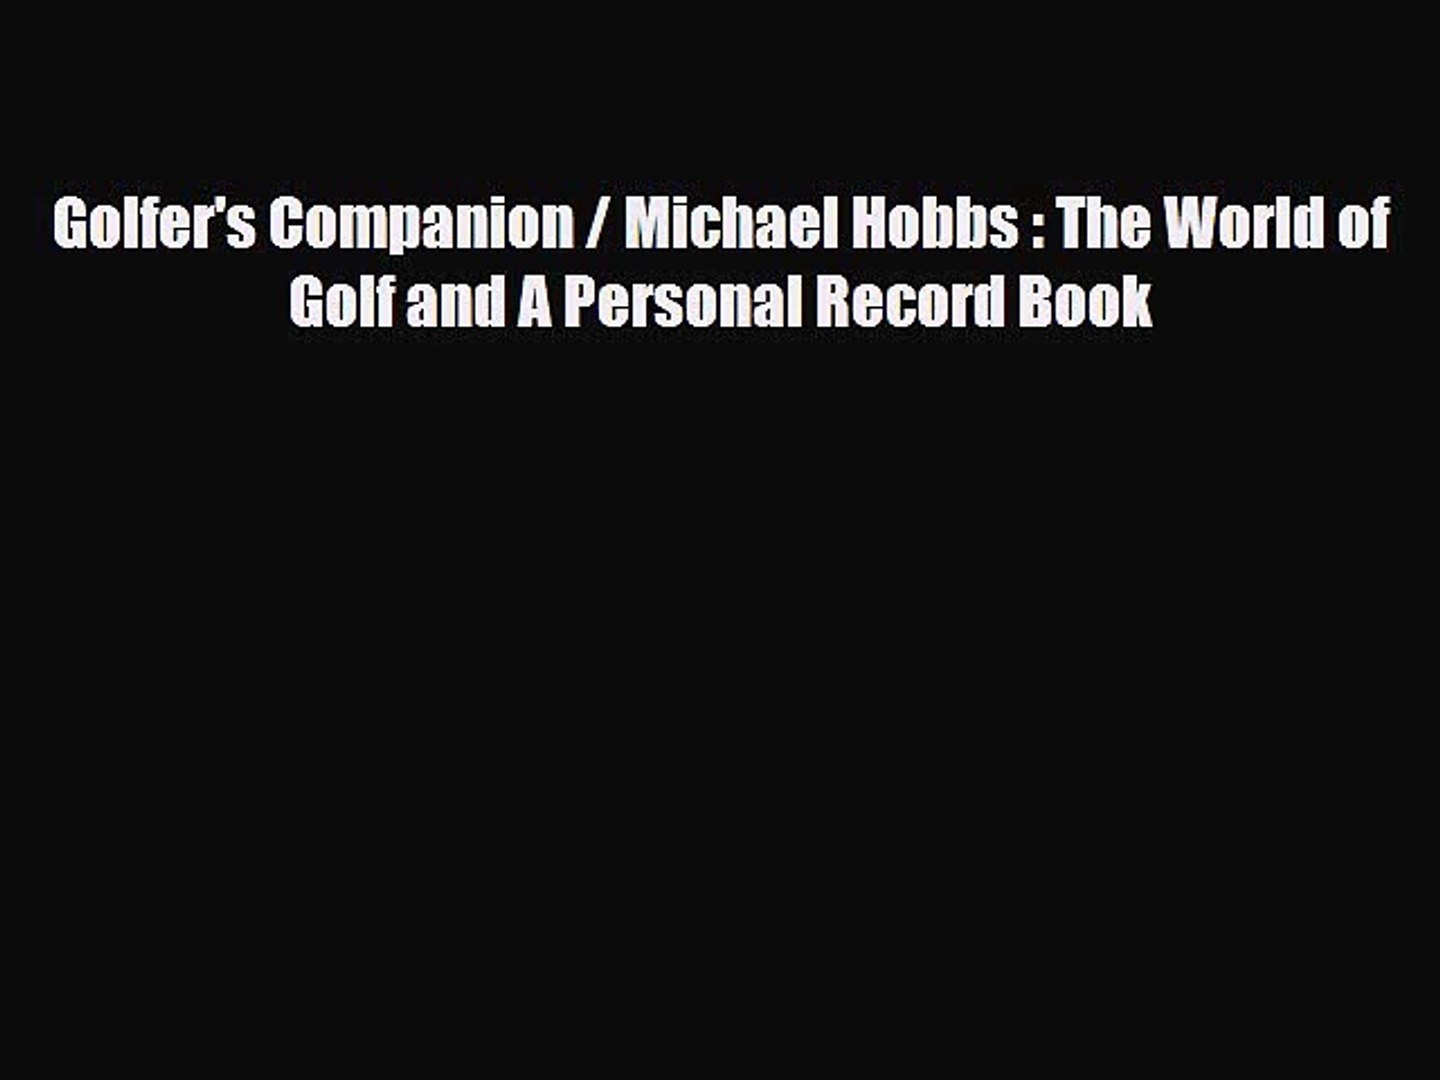 [PDF Download] Golfer's Companion / Michael Hobbs : The World of Golf and A Personal Record